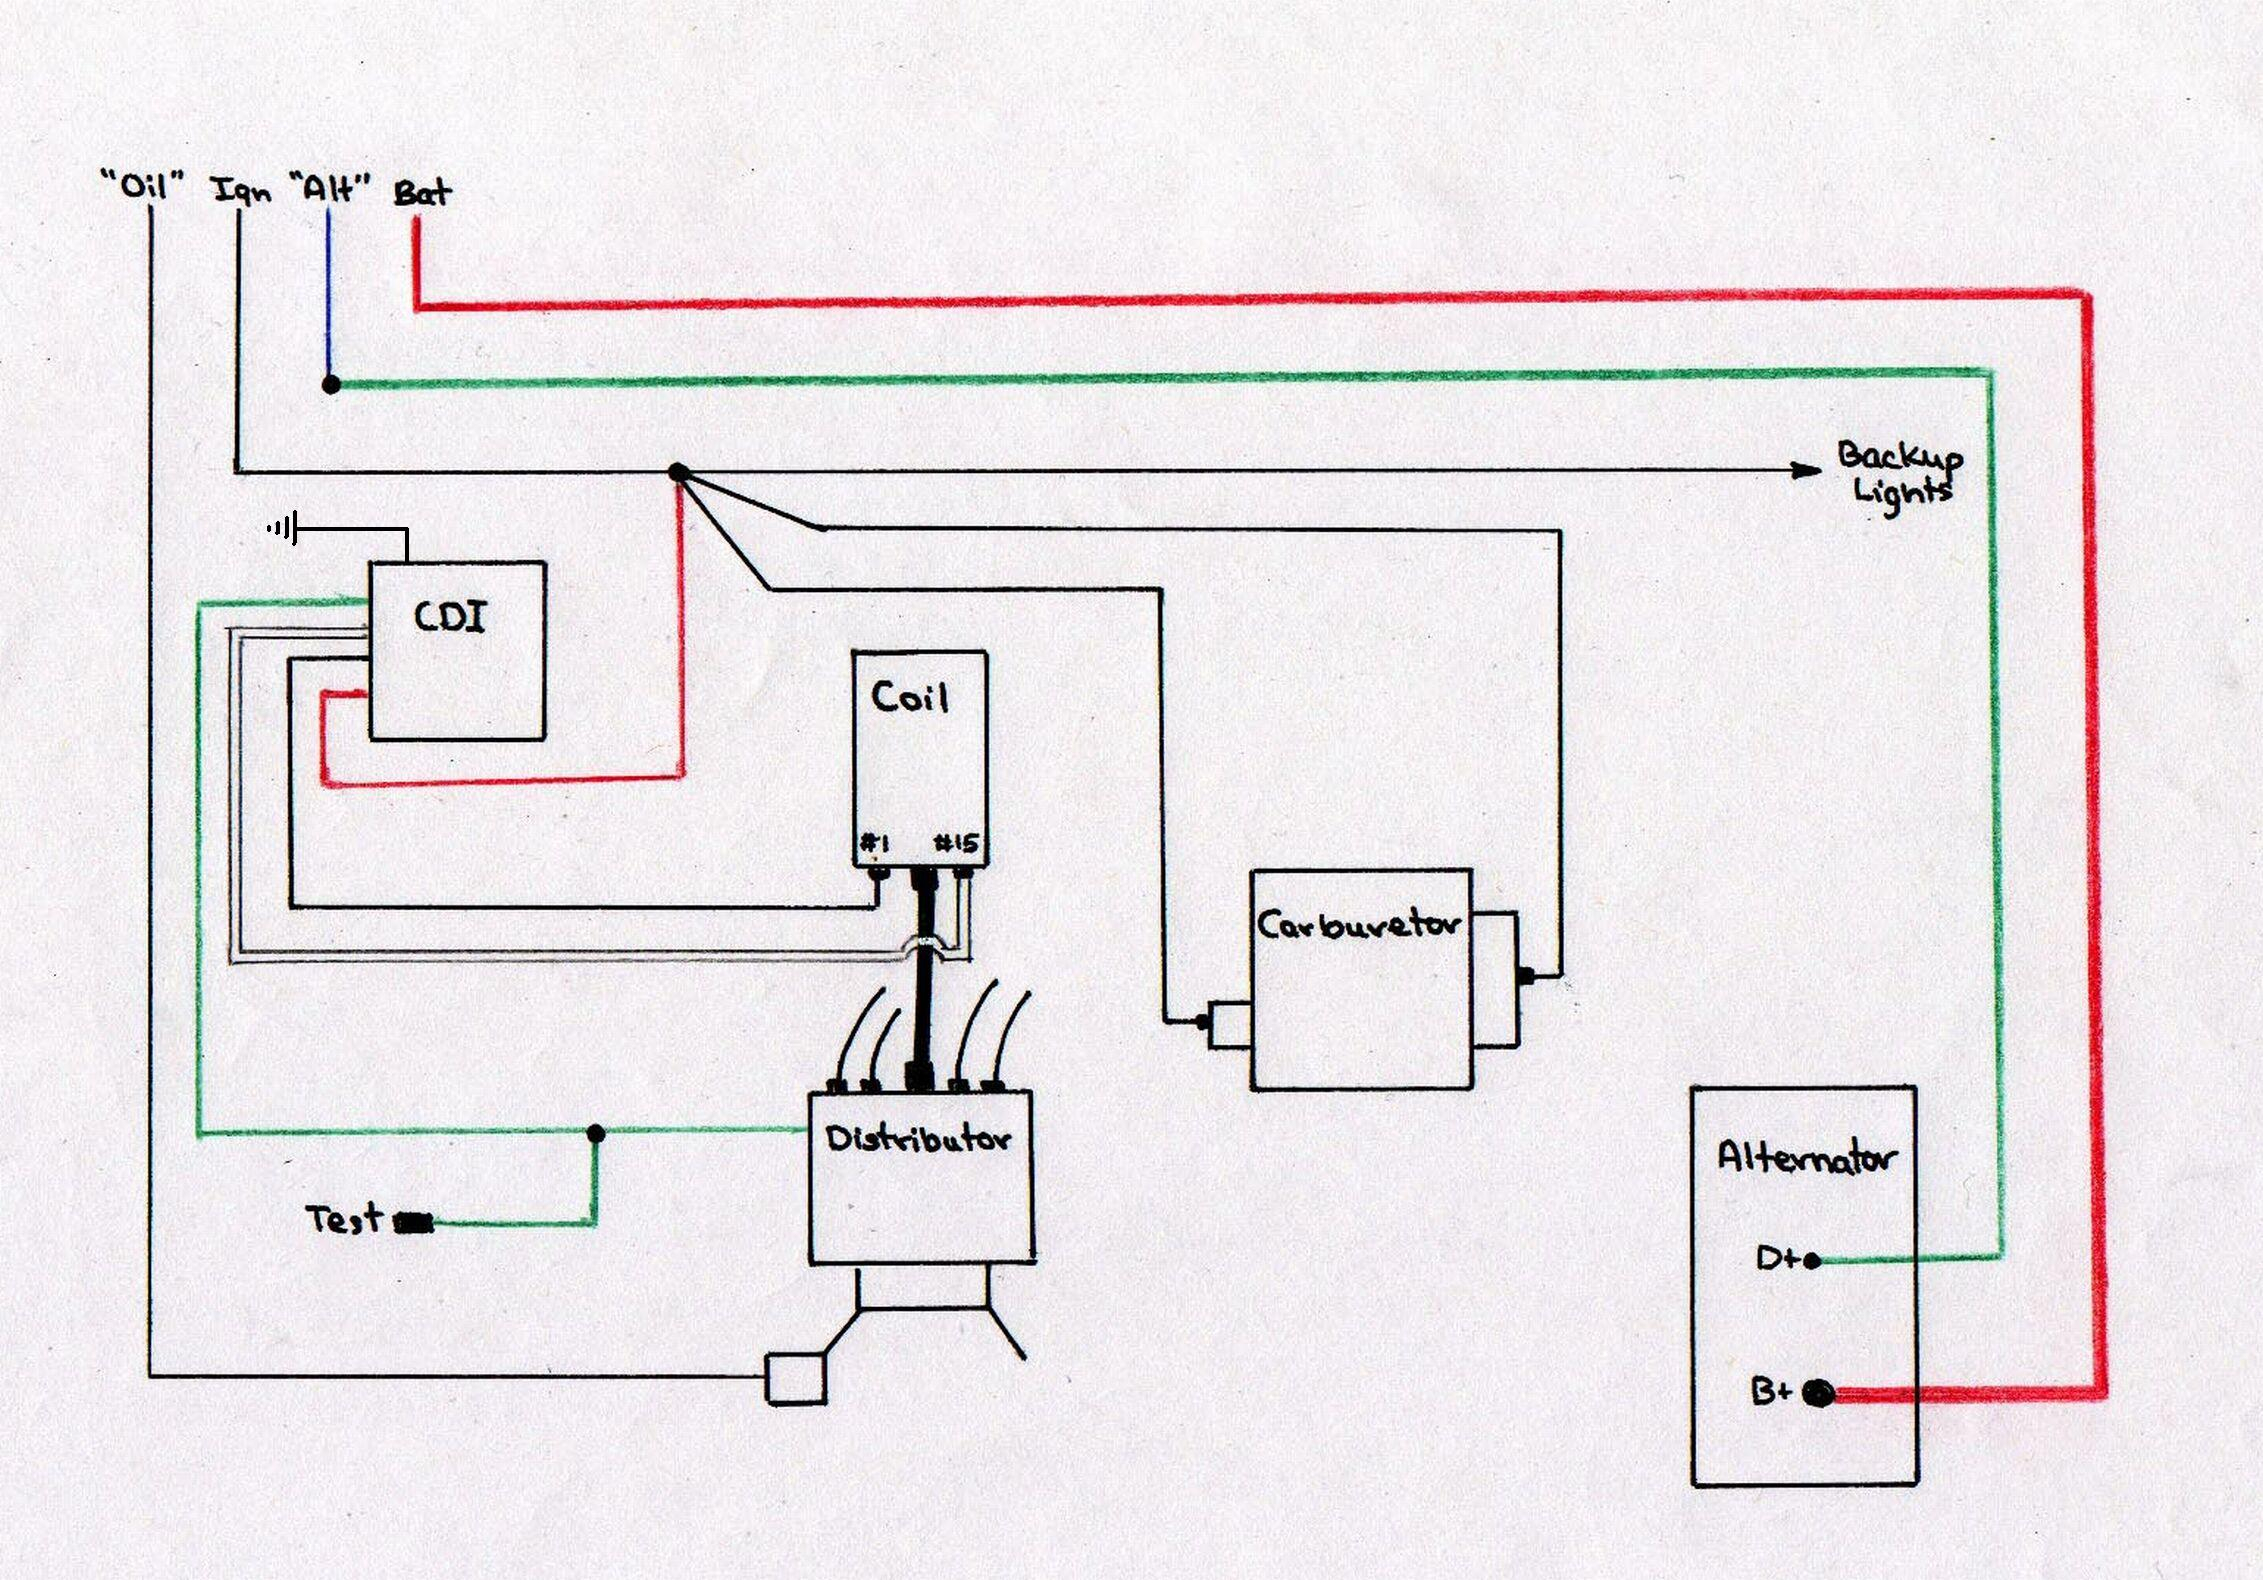 061_schematic kasea 50cc scooter engine diagram roketa 50cc scooter wiring Ignition Coil Wiring Diagram at gsmportal.co